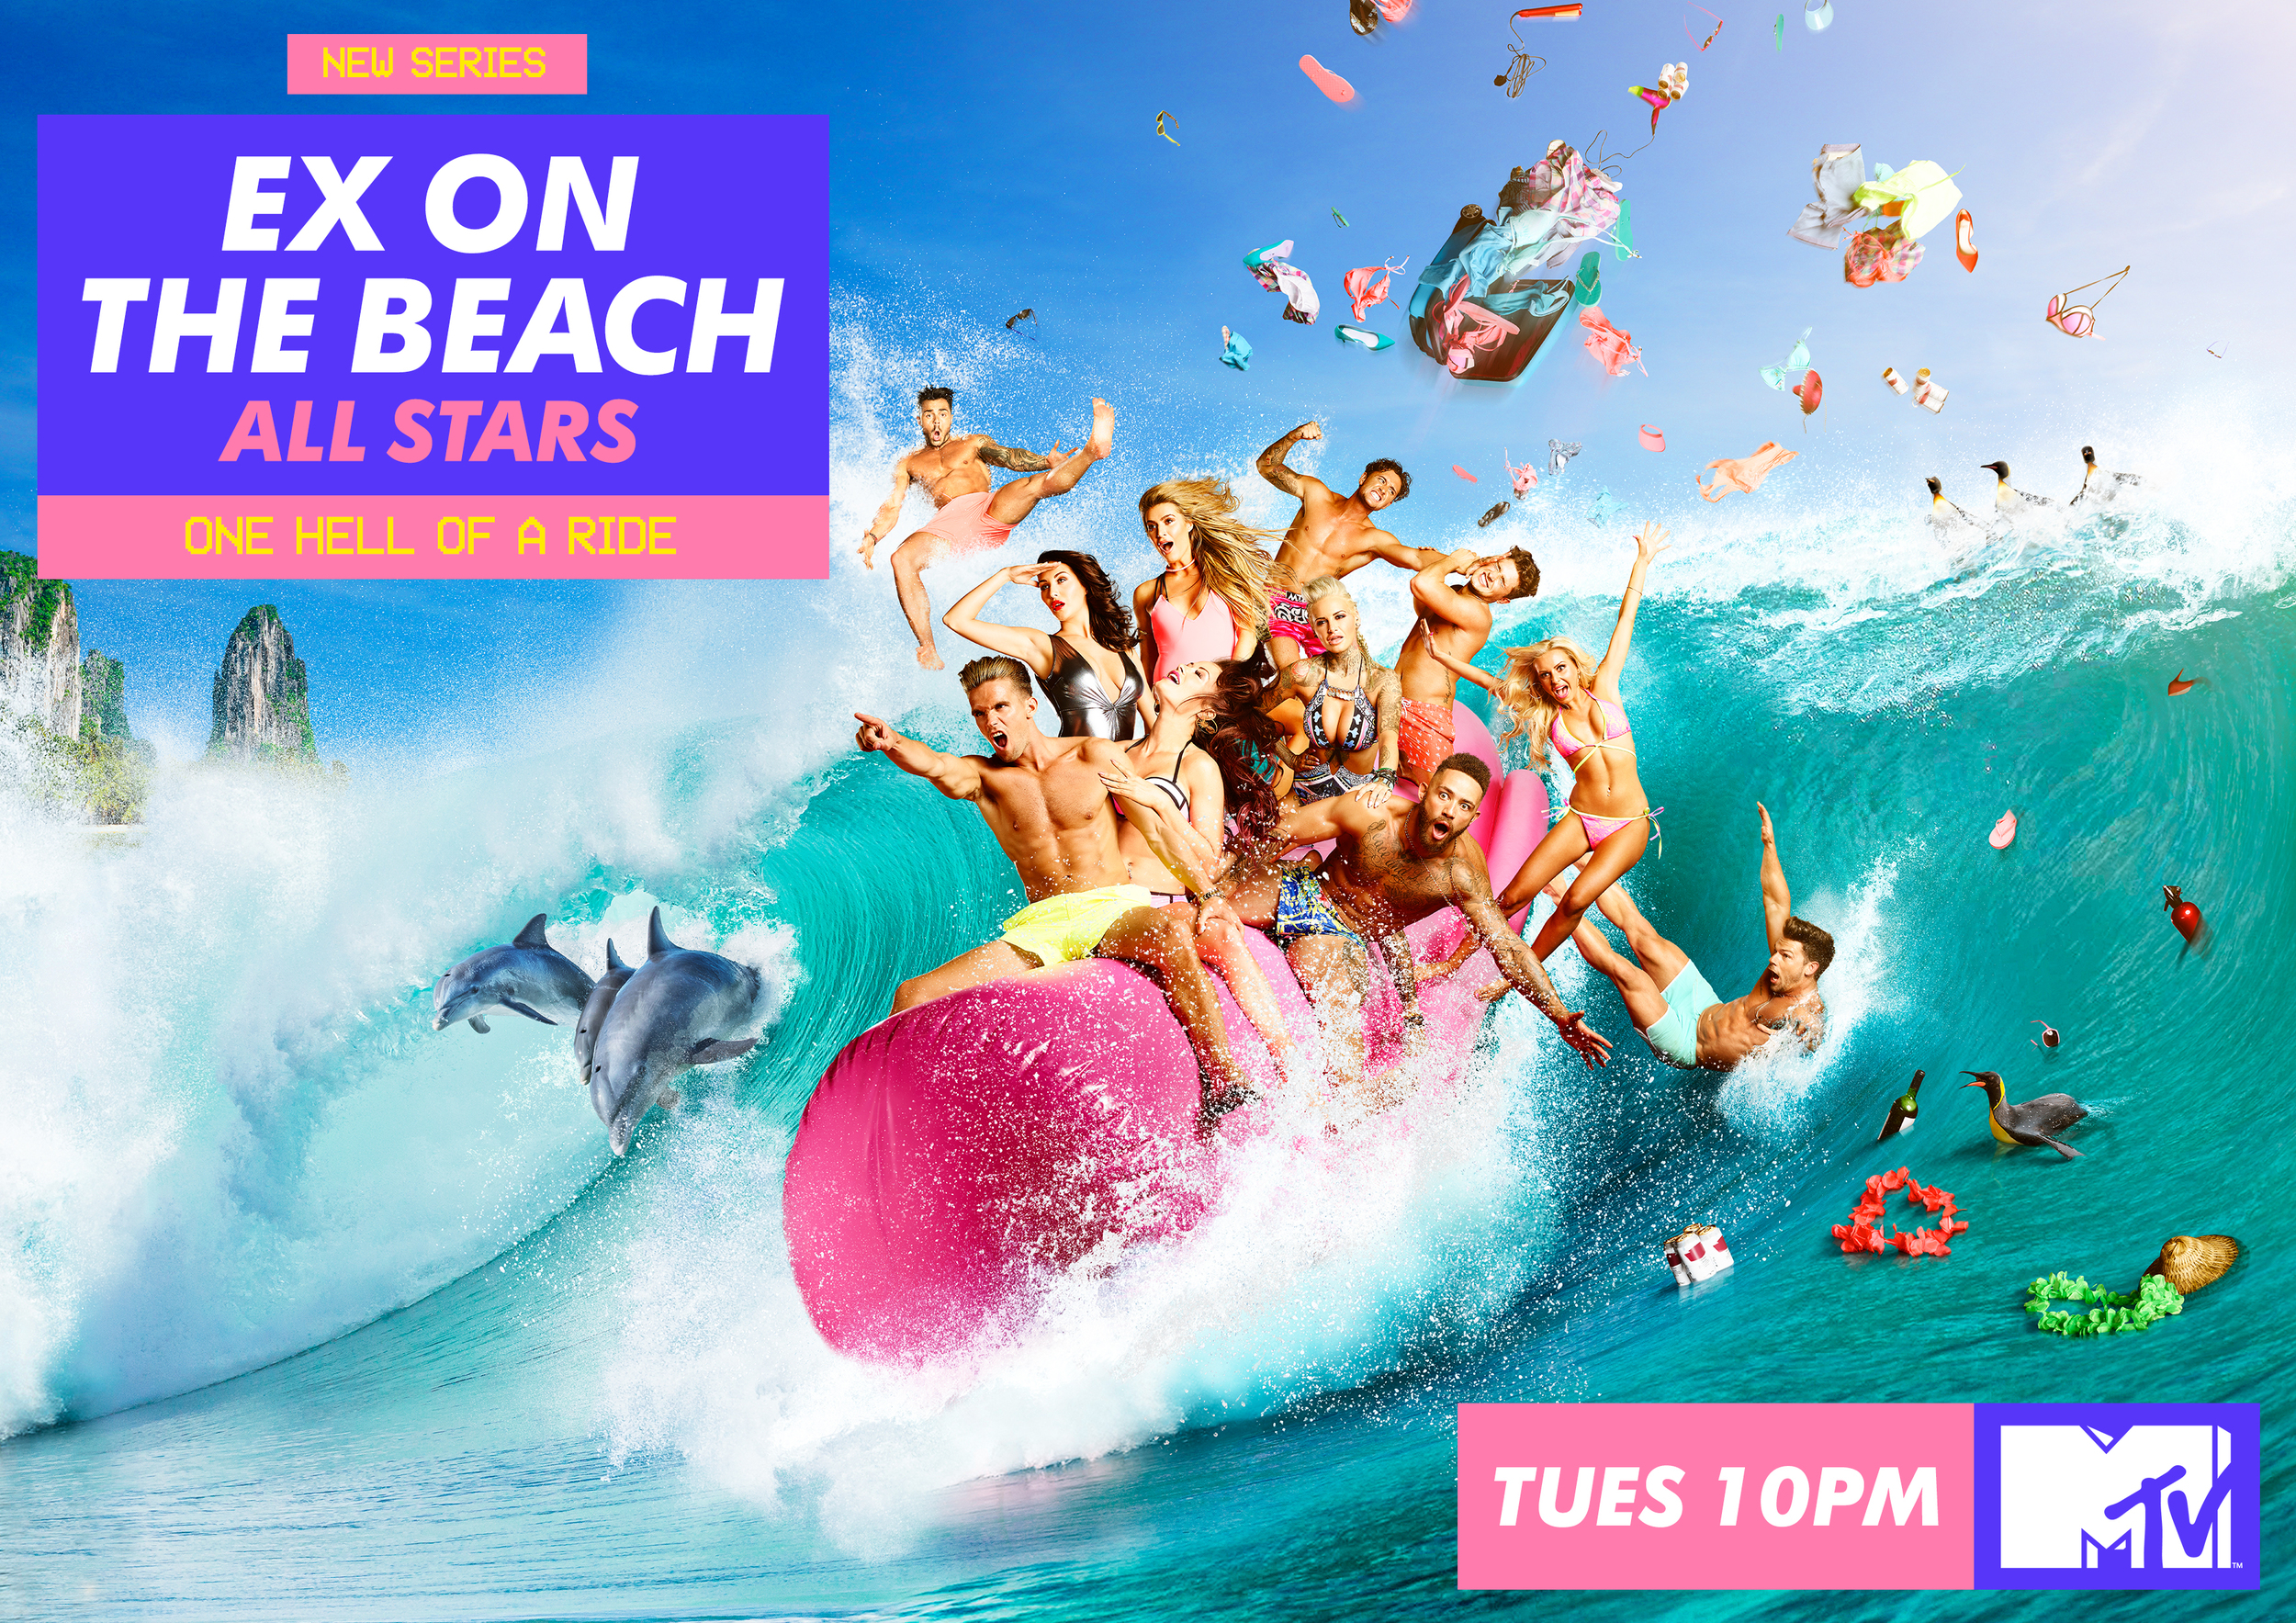 MTV Ex On the Beach - Key Art Campaign - 'One Hell of a Ride'